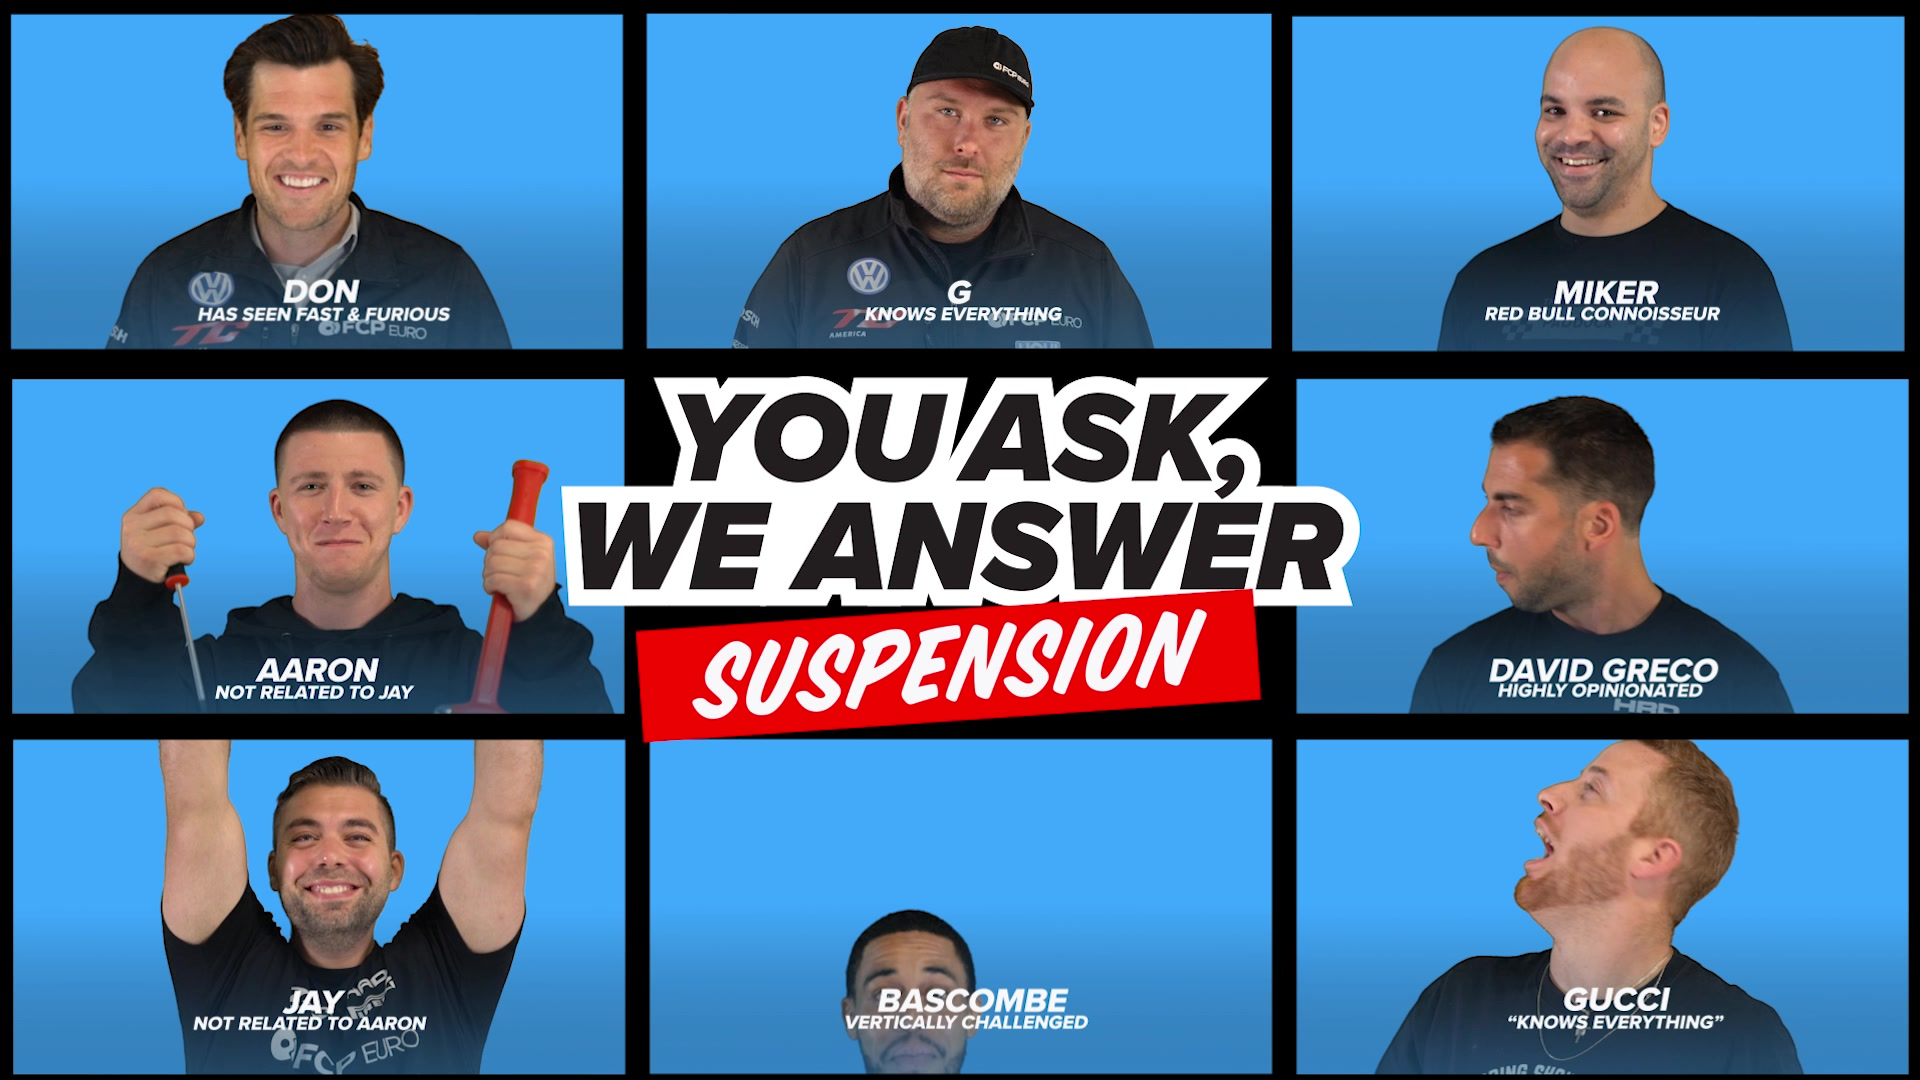 You Had Questions About Suspensions, And We Answered Them